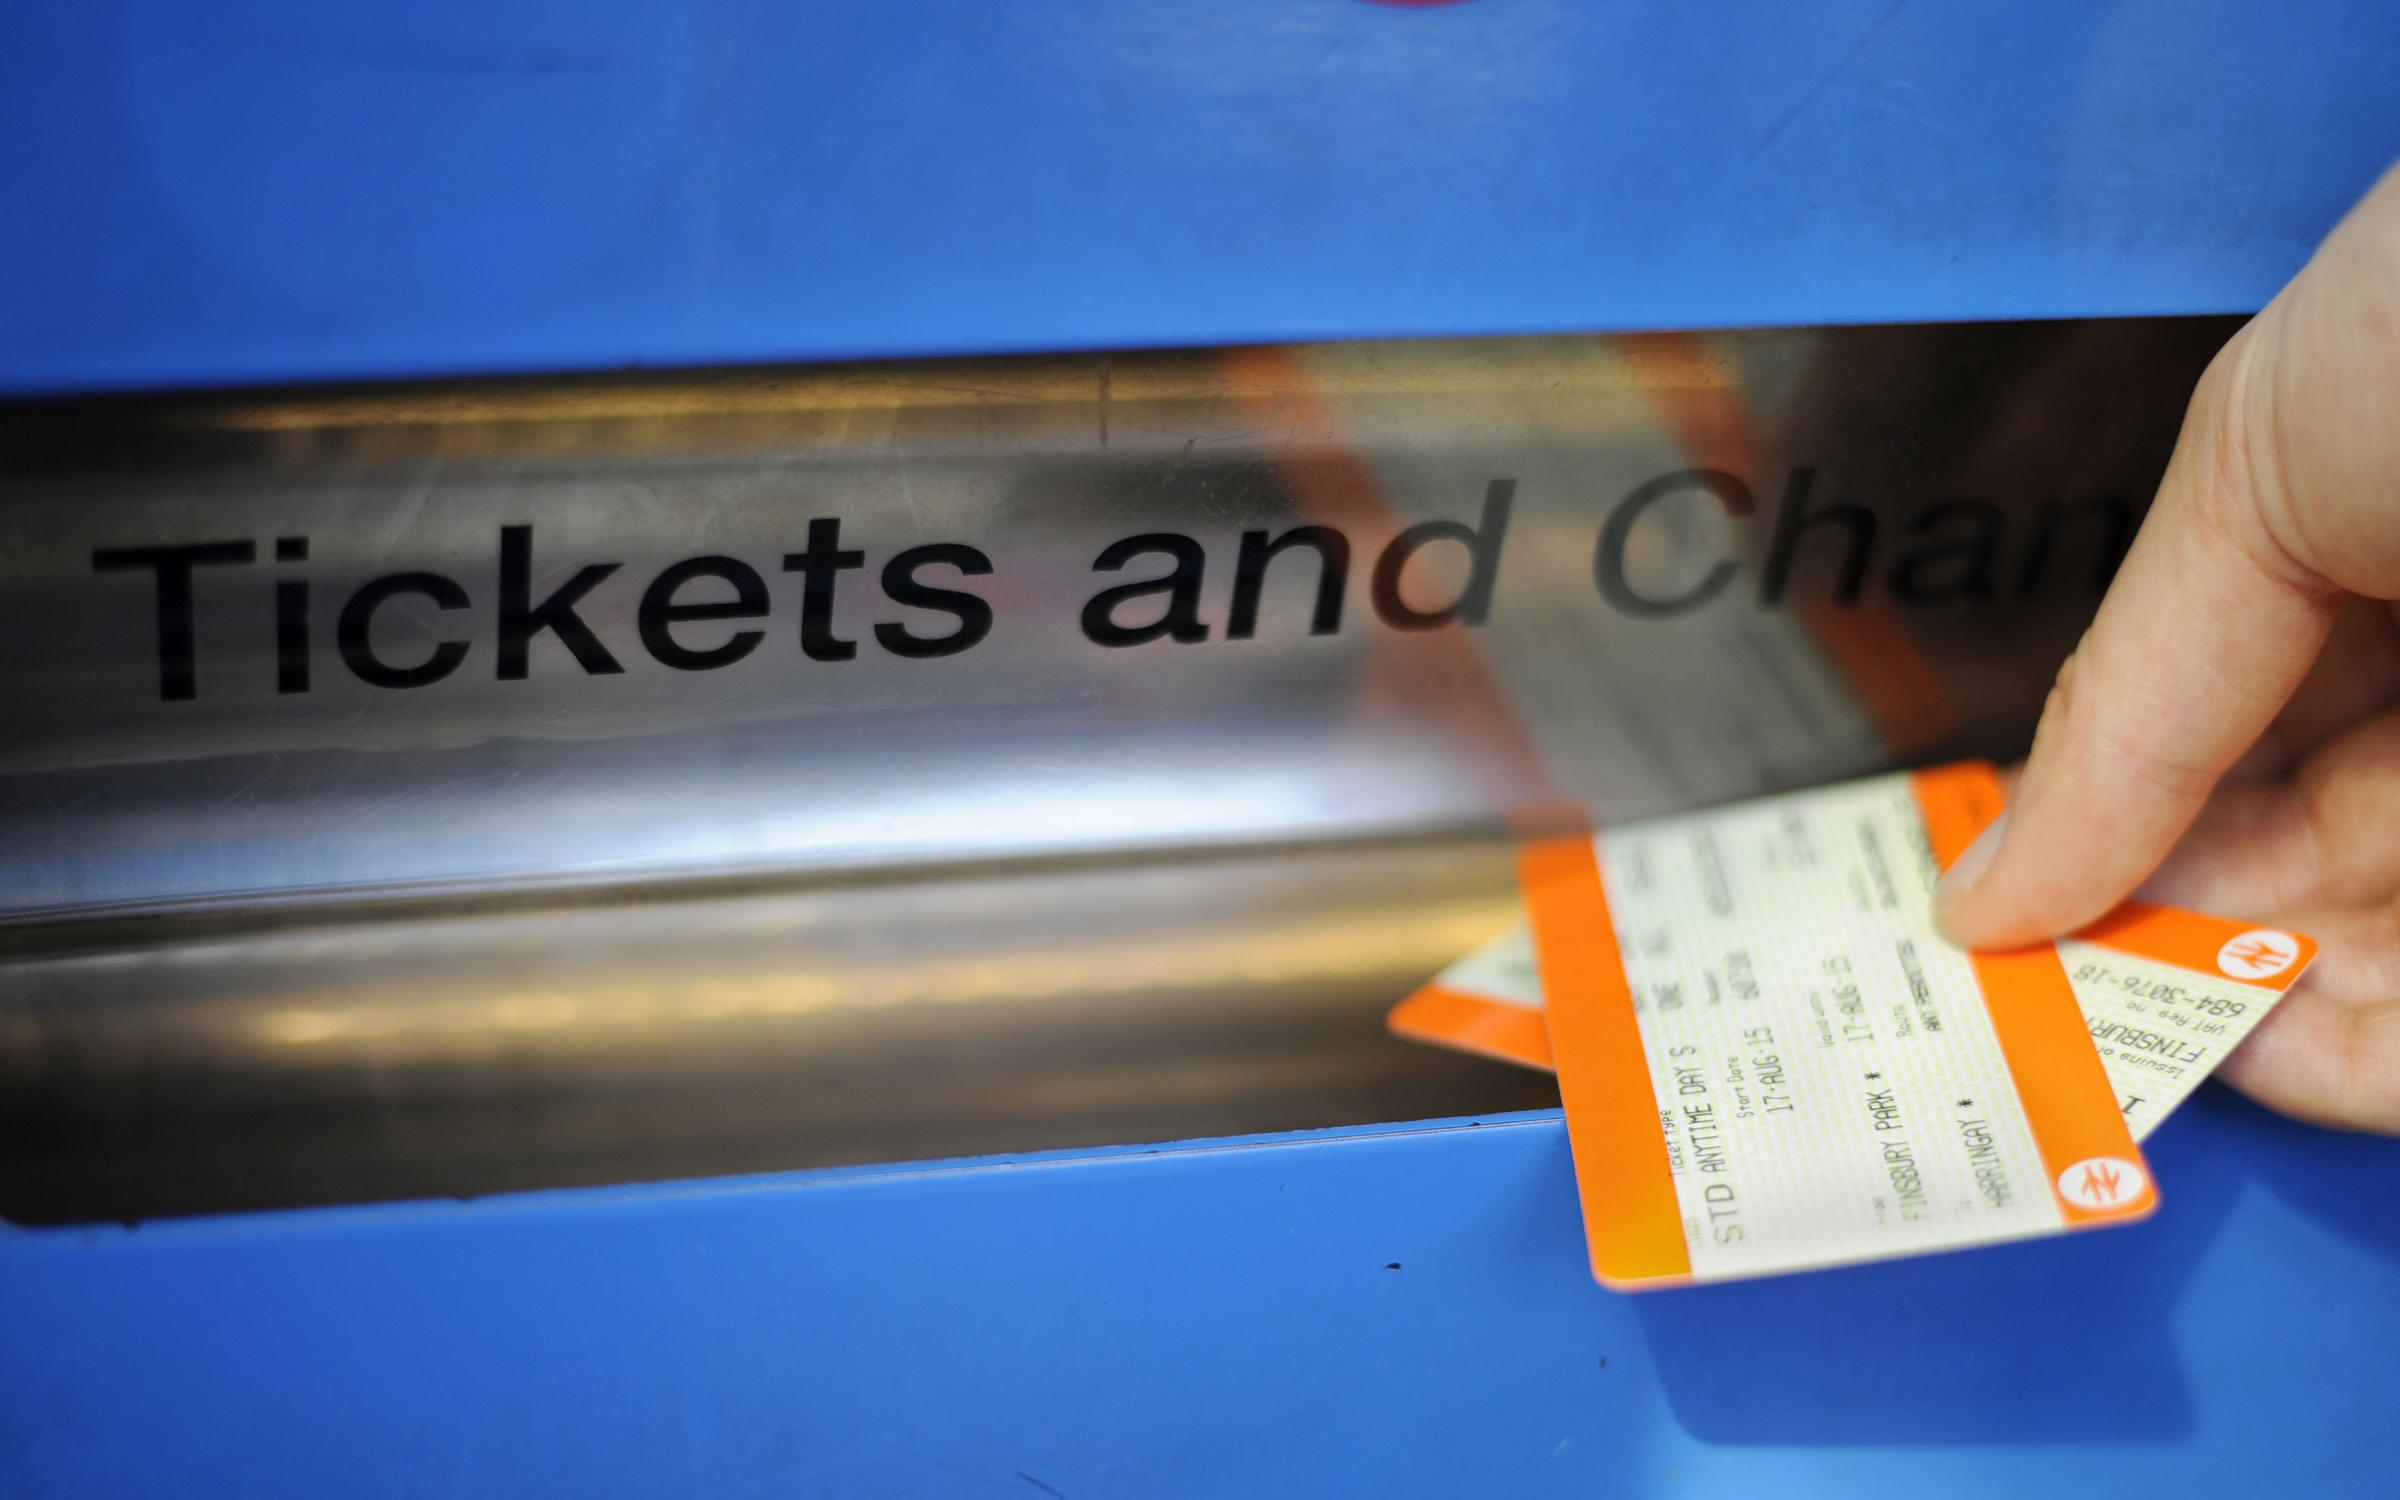 RISING COSTS: Fares are going up again. PICTURE: Lauren Hurley/PA Wire.